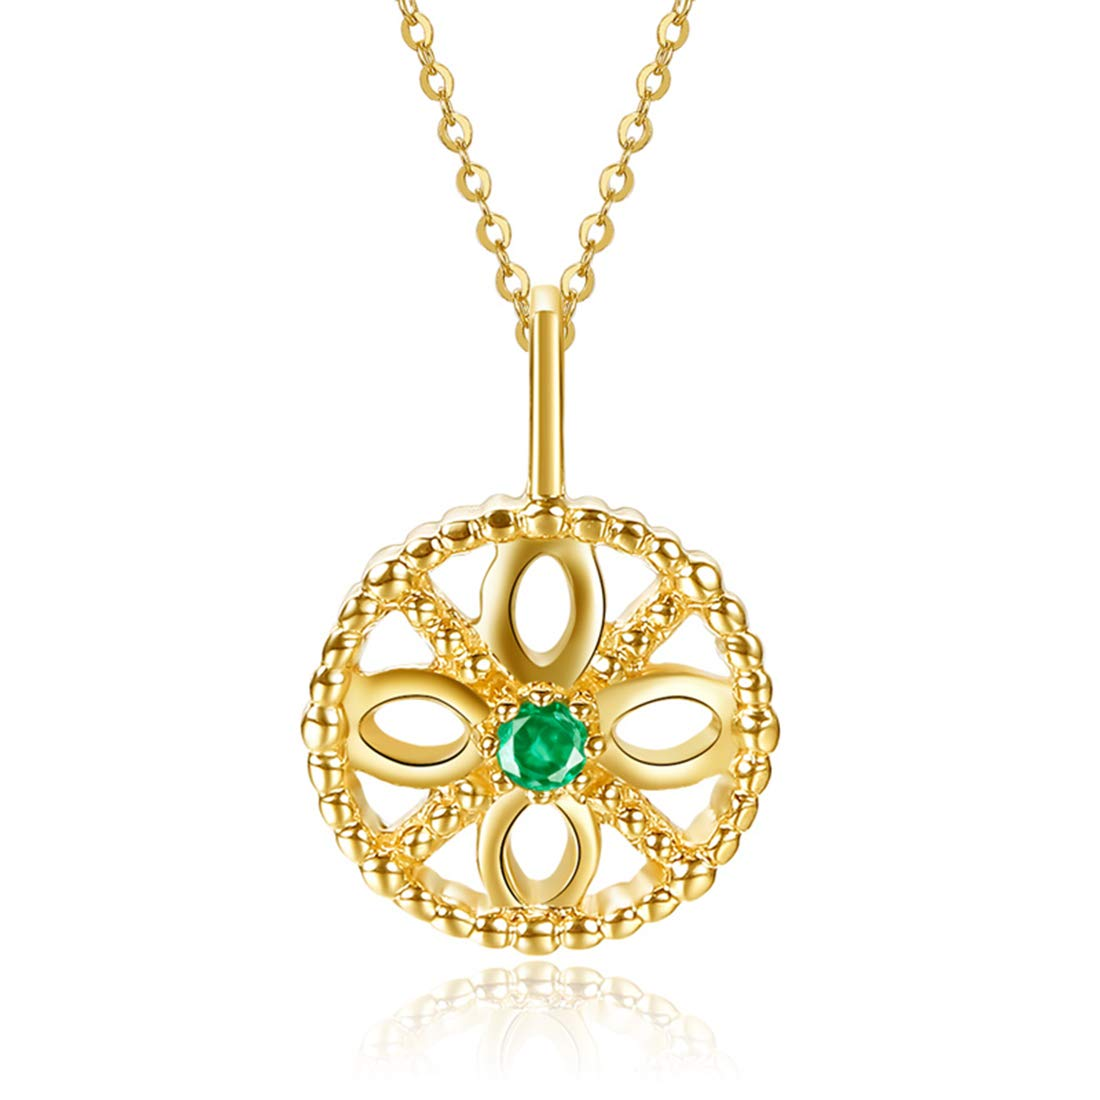 16 2 Extender Carleen 14k Solid Yellow Gold 0.02ct Natural Green Emerald Round Circle Flower Pendant Necklace For Women Girls